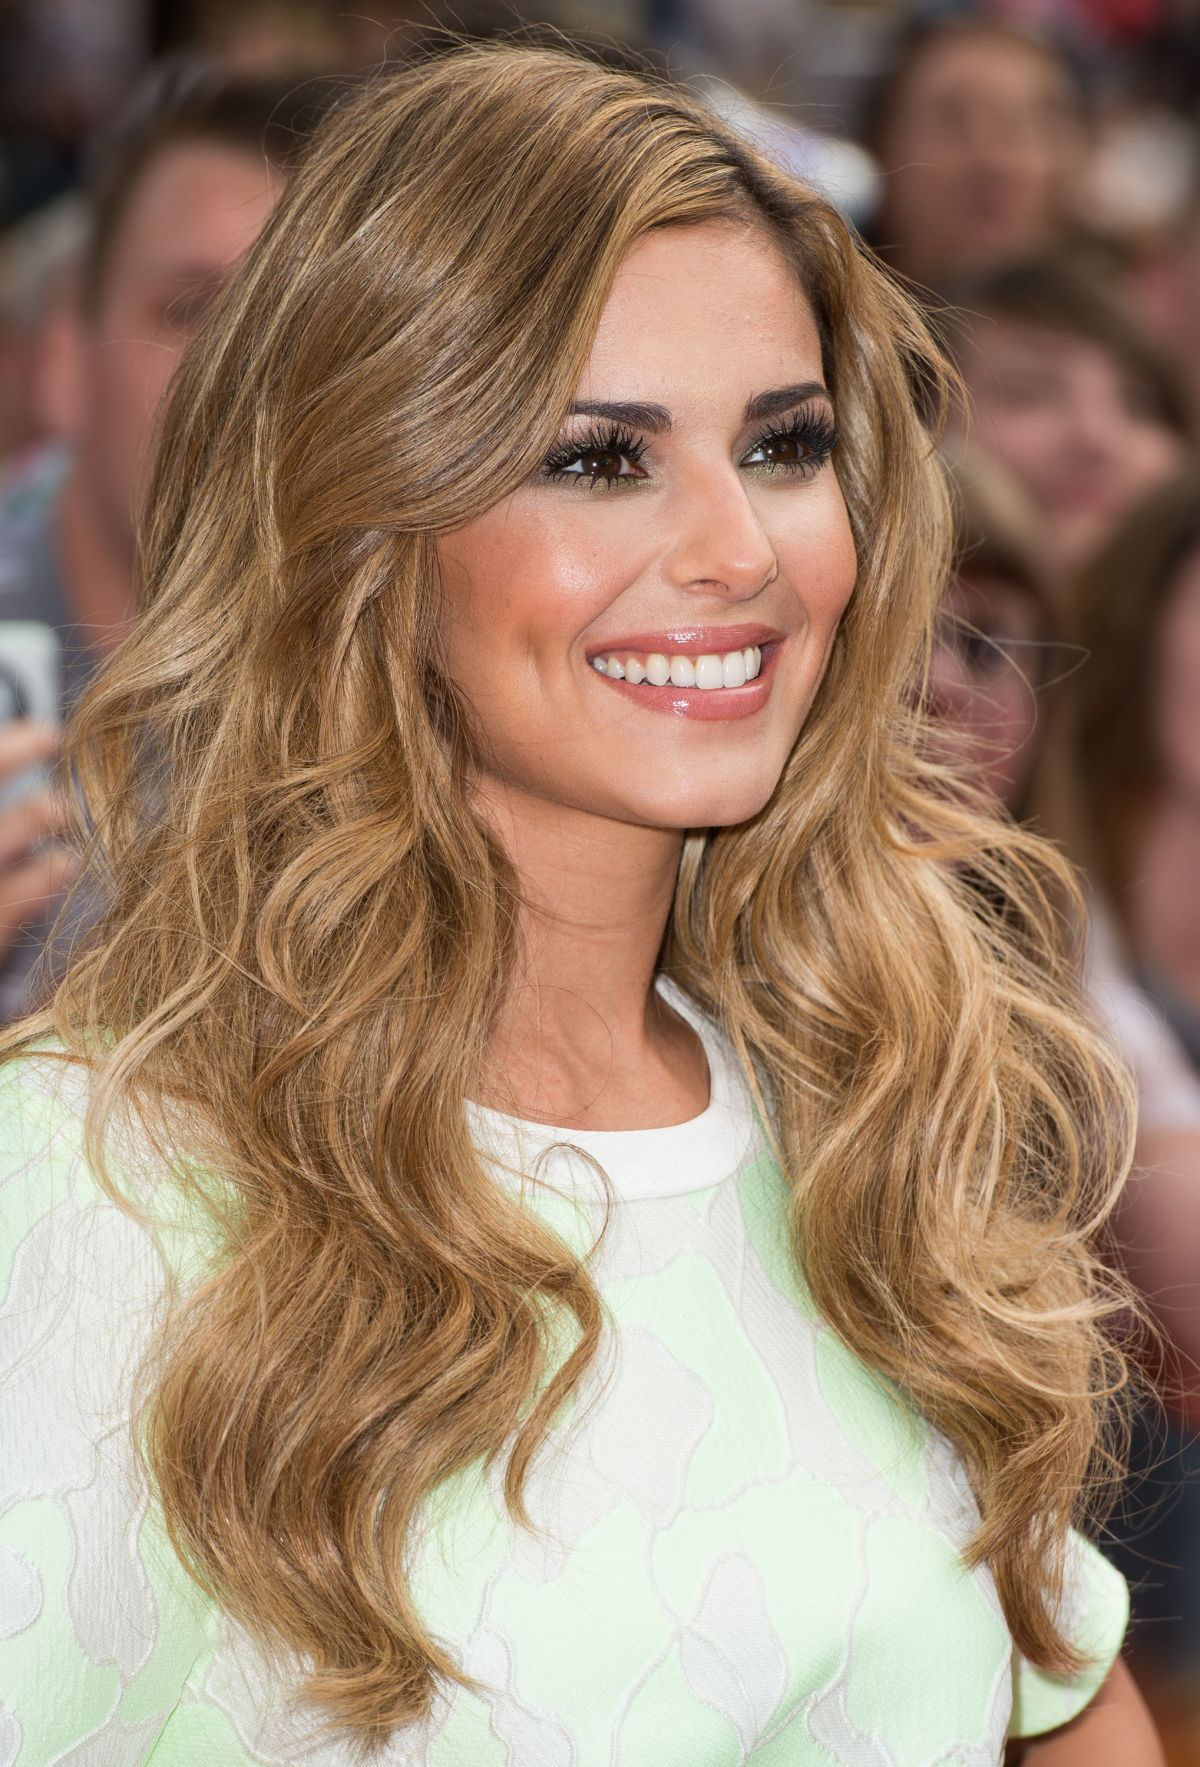 Cheryl Cole At X Factor Auditions In London Celebzz